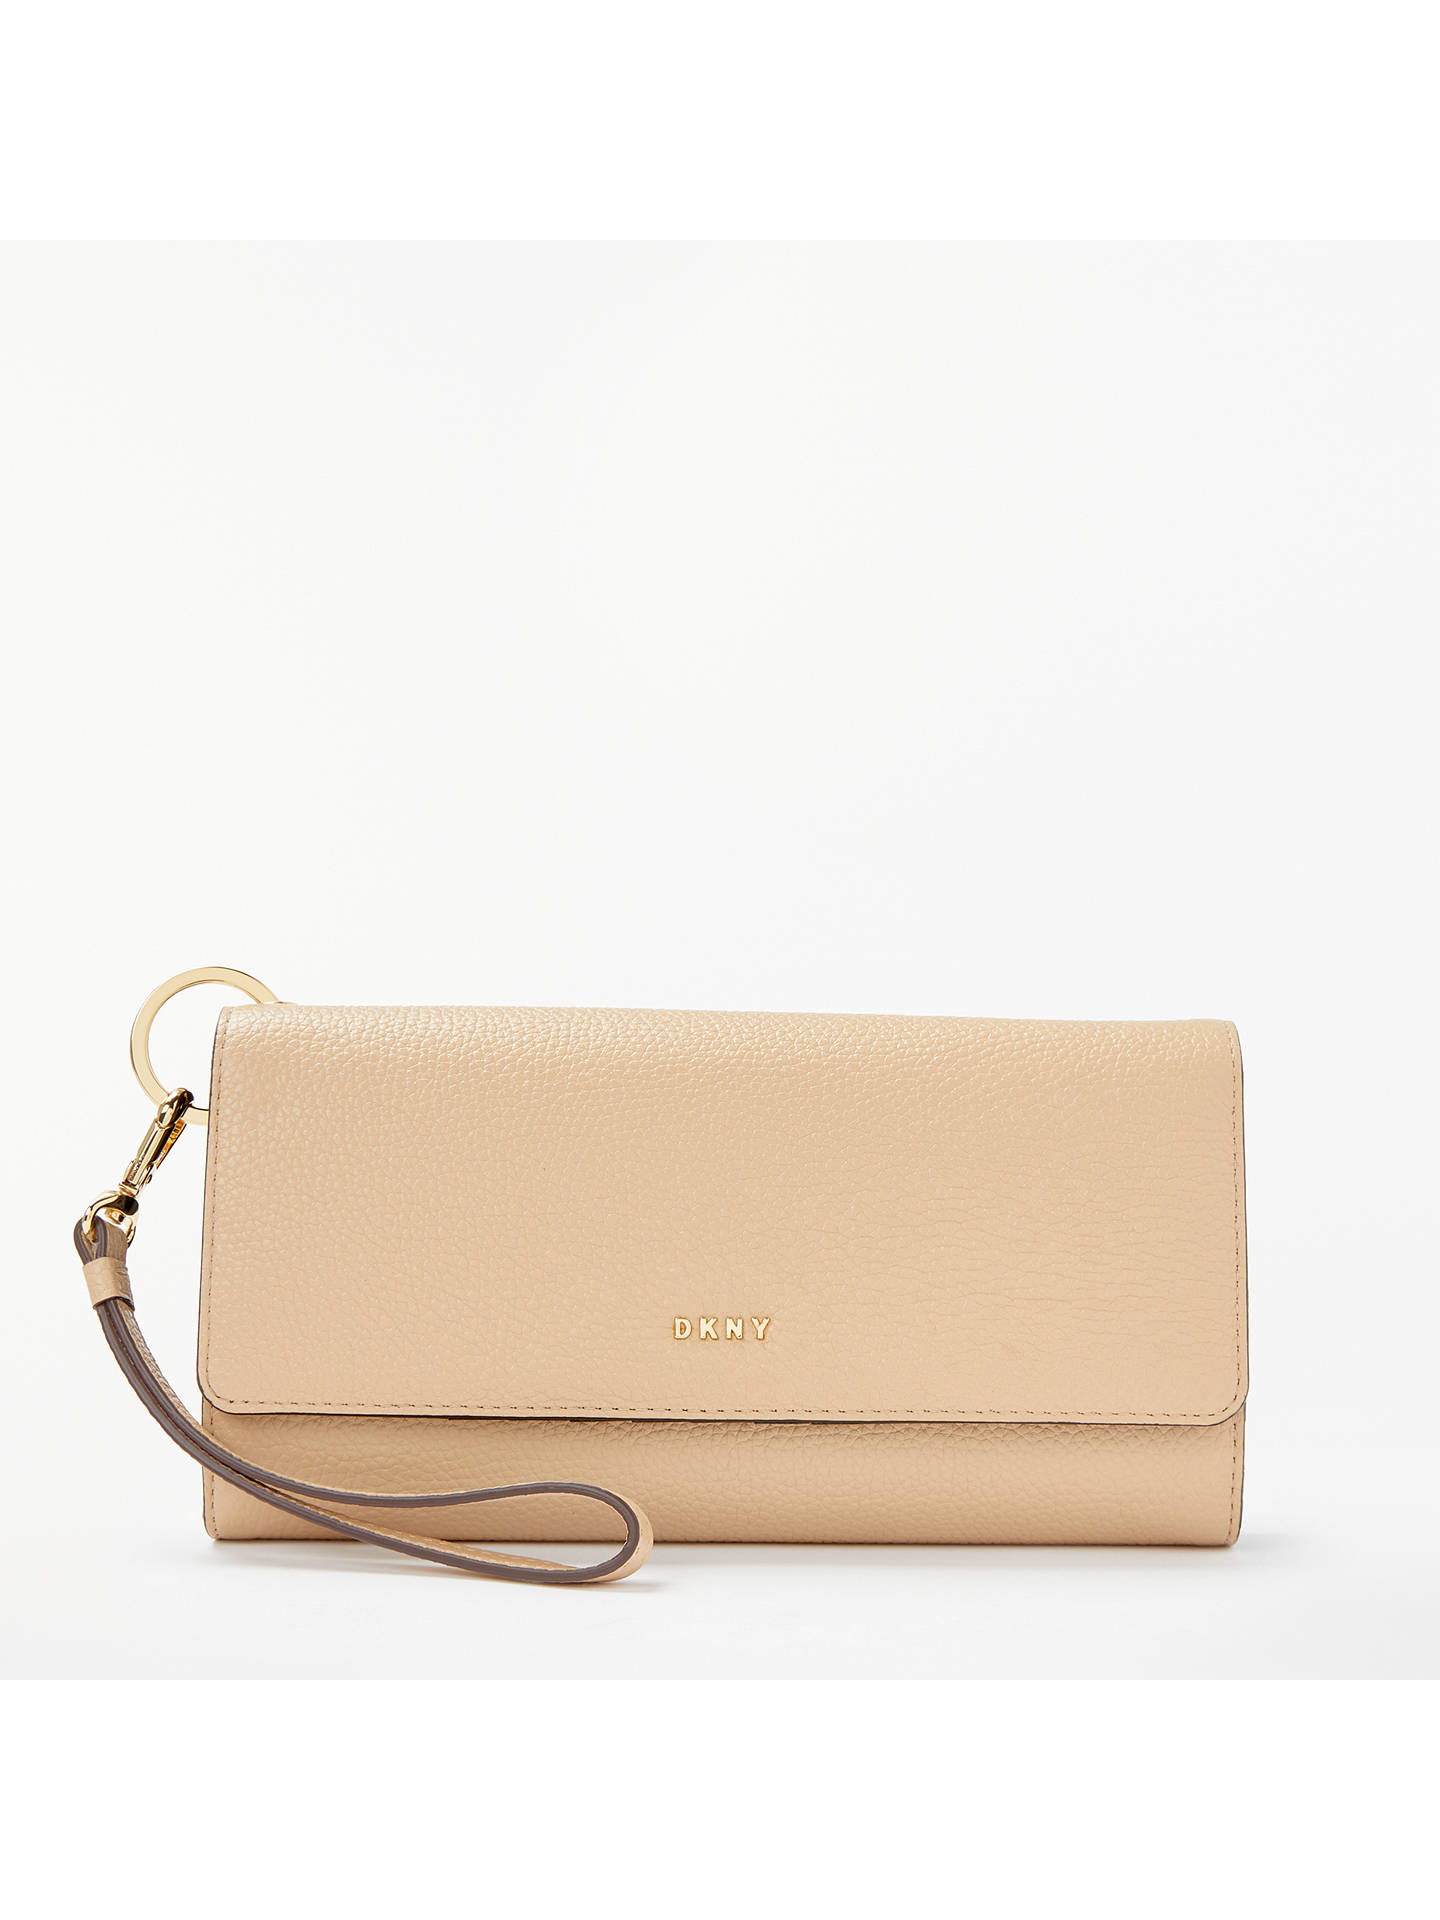 dc94ab79d3a BuyDKNY Chelsea Pebbled Leather Flapover Purse, Eggnog Online at  johnlewis.com ...